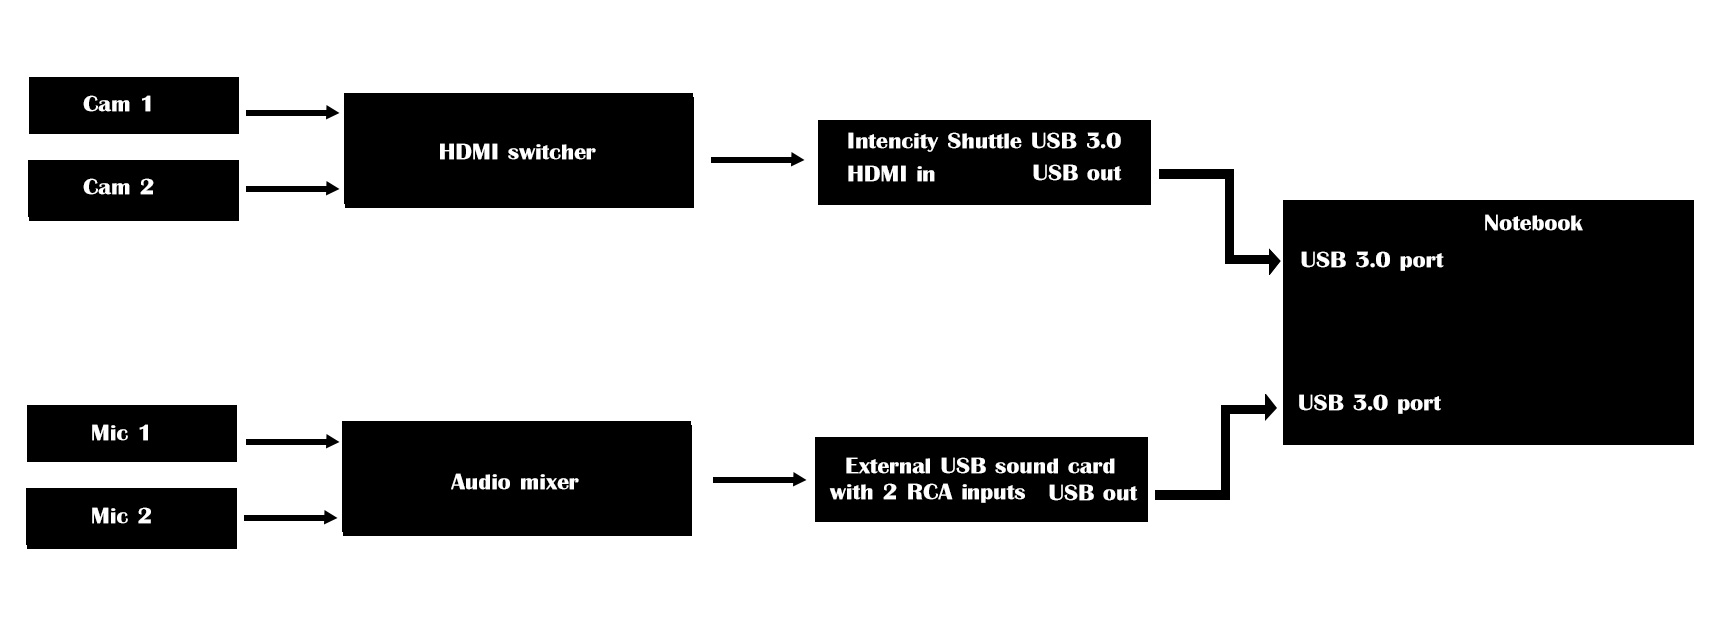 Intensity Shuttle Usb3 Audio Issue Wirecast Capture Devices And Sources Q A Telestream Community Forum